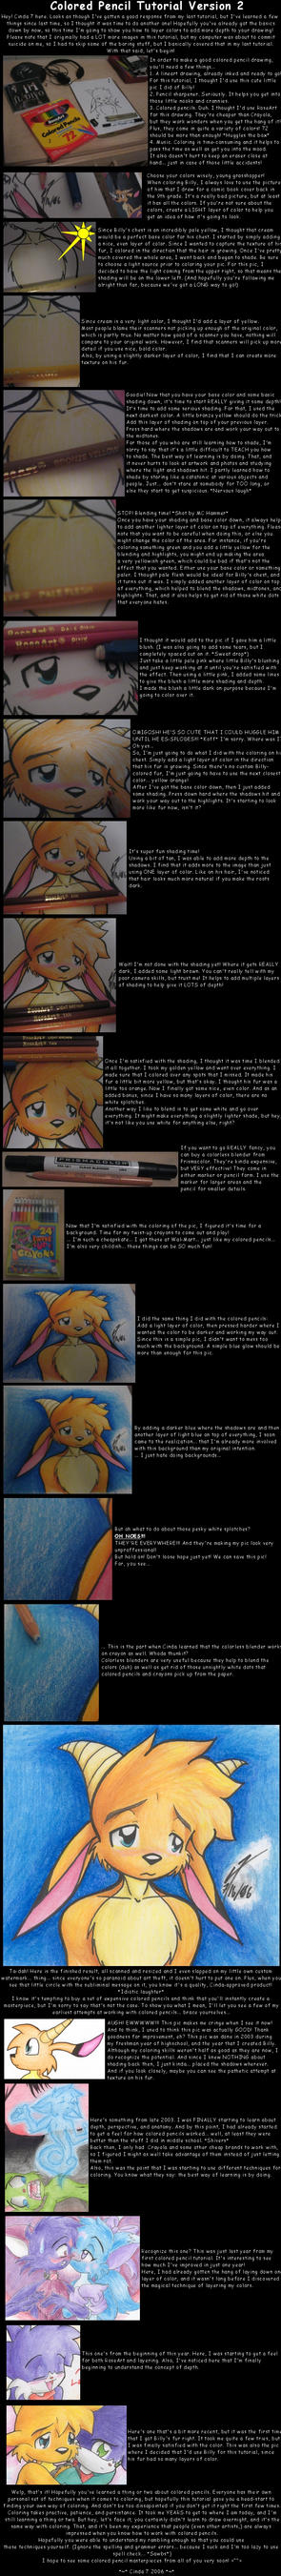 Colored Pencil Tutorial v2 by NeroStreet